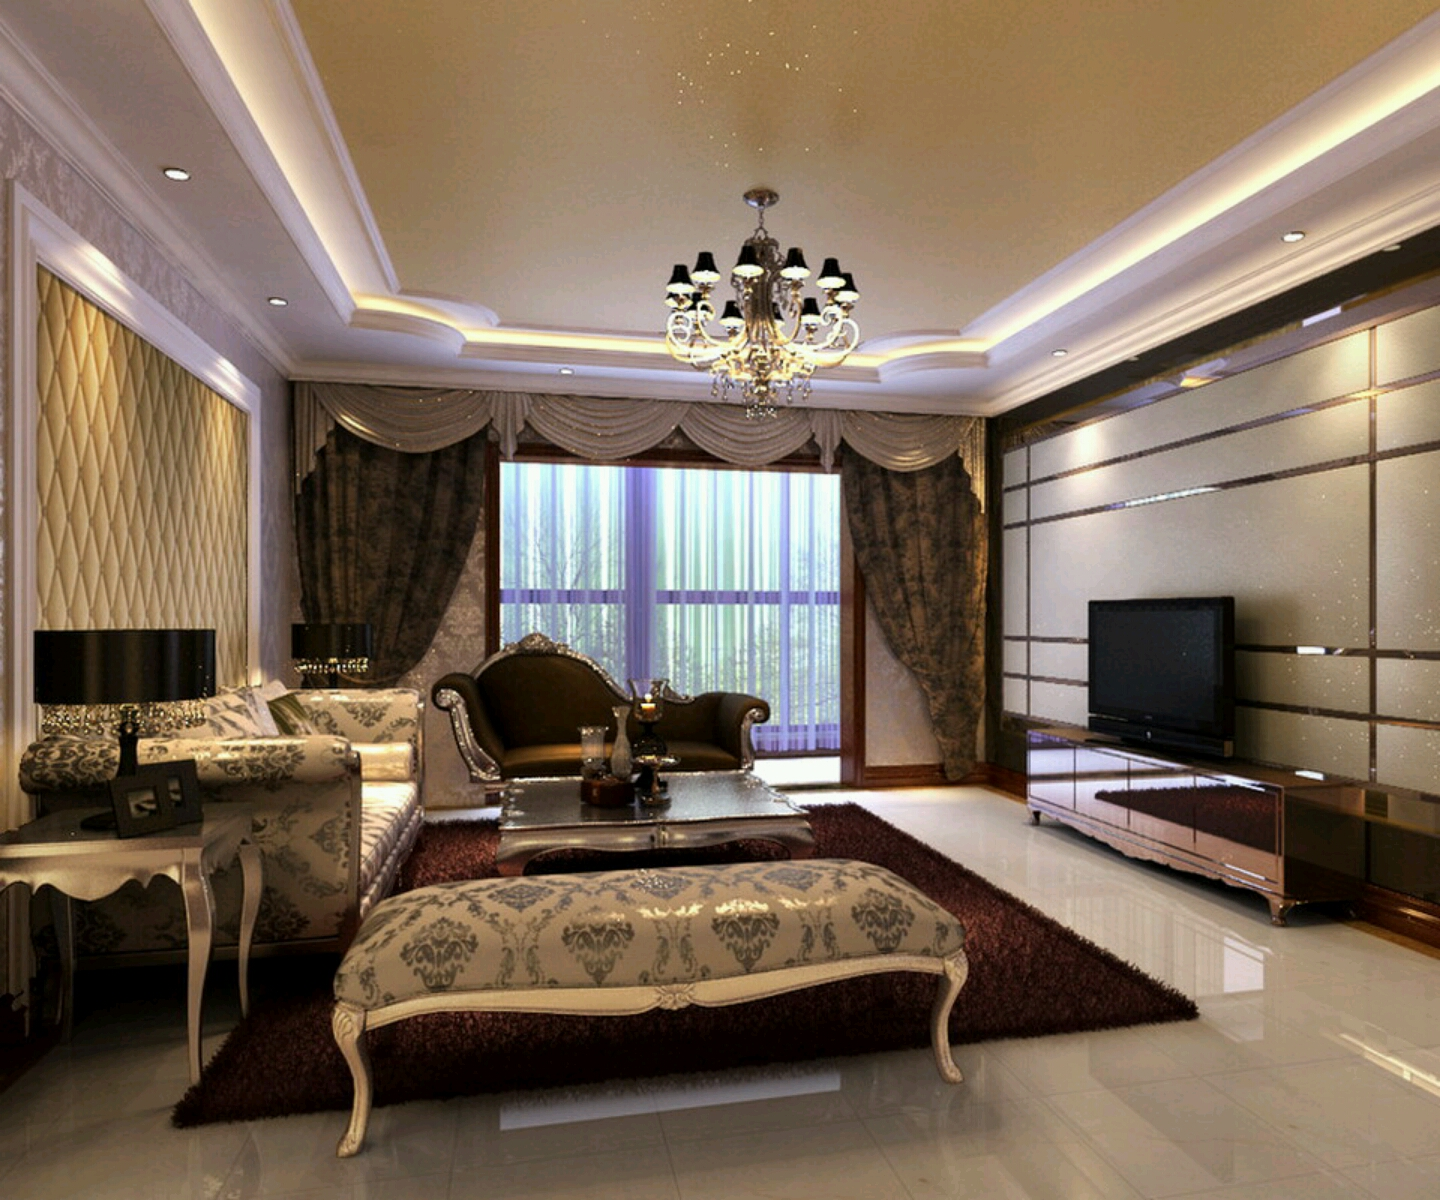 New home designs latest luxury homes interior decoration for Latest home interior design